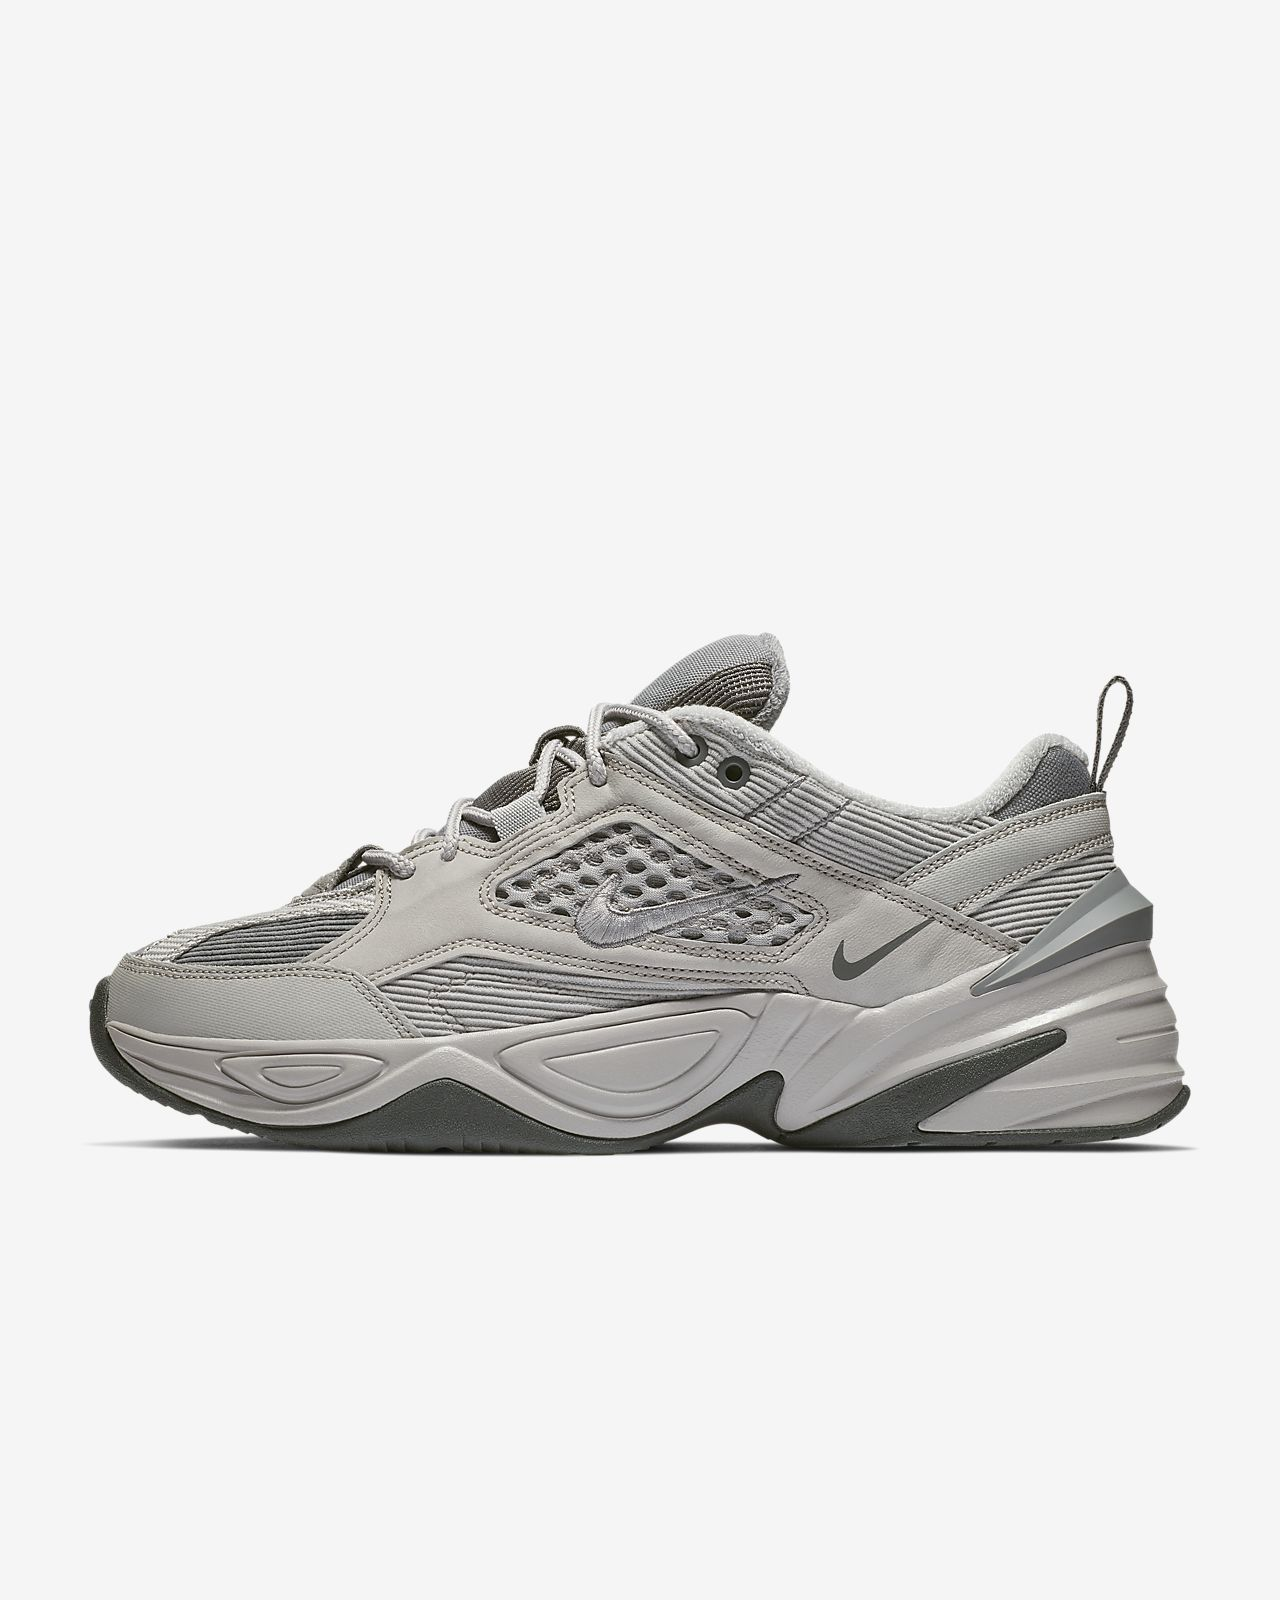 Men and Women's Nike M2K Tekno Atmosphere Grey BV7075 001